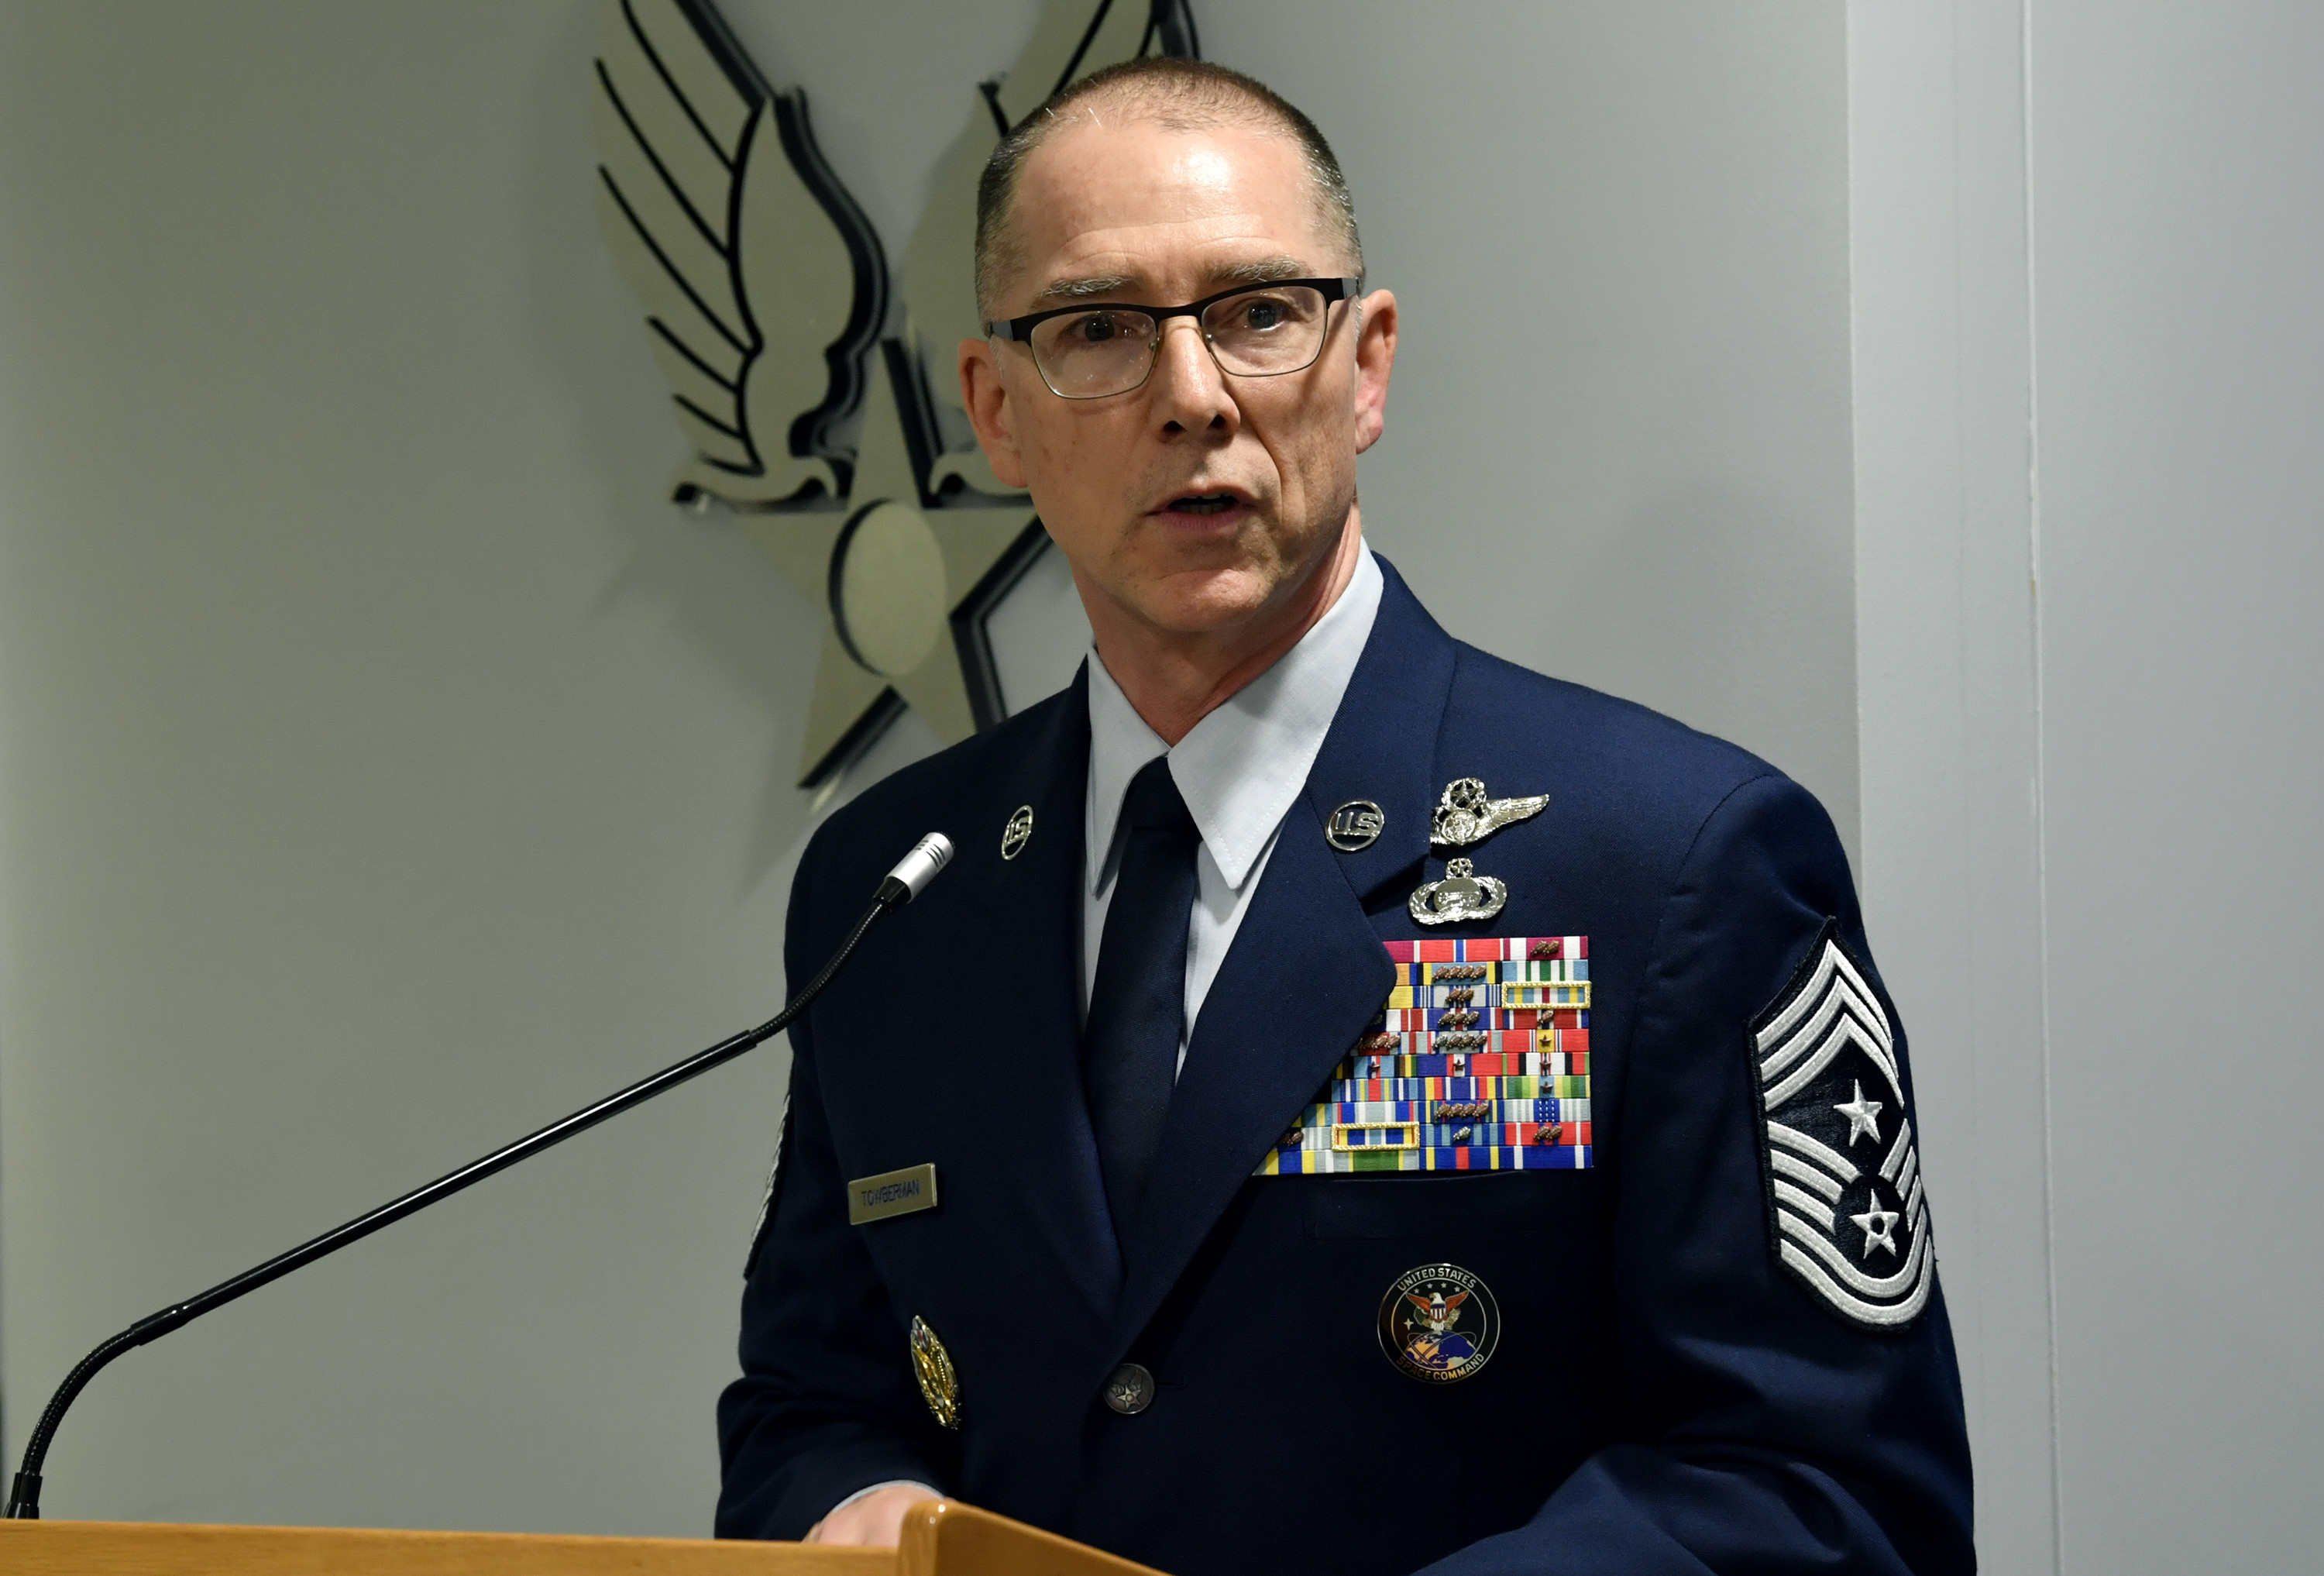 Chief Master Sgt. Roger A. Towberman. (U.S. Air Force photo by Wayne Clark)